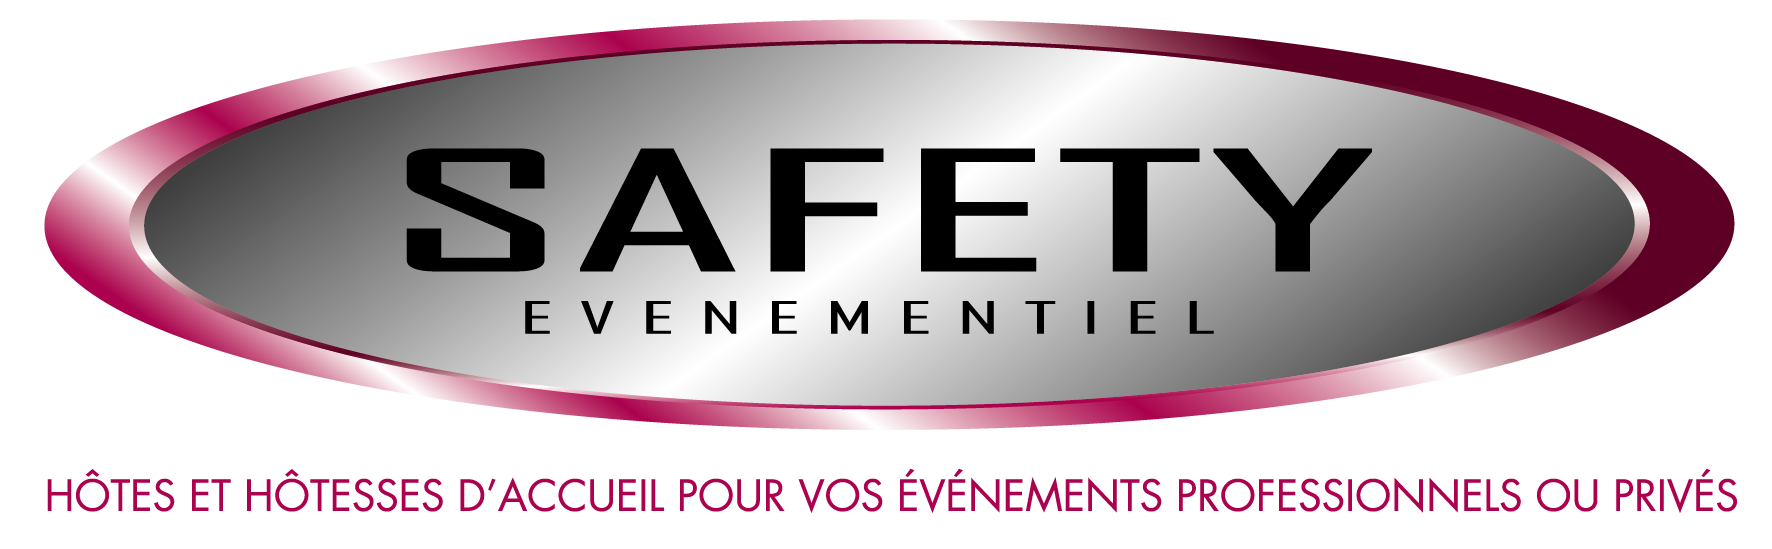 Safety evementiel